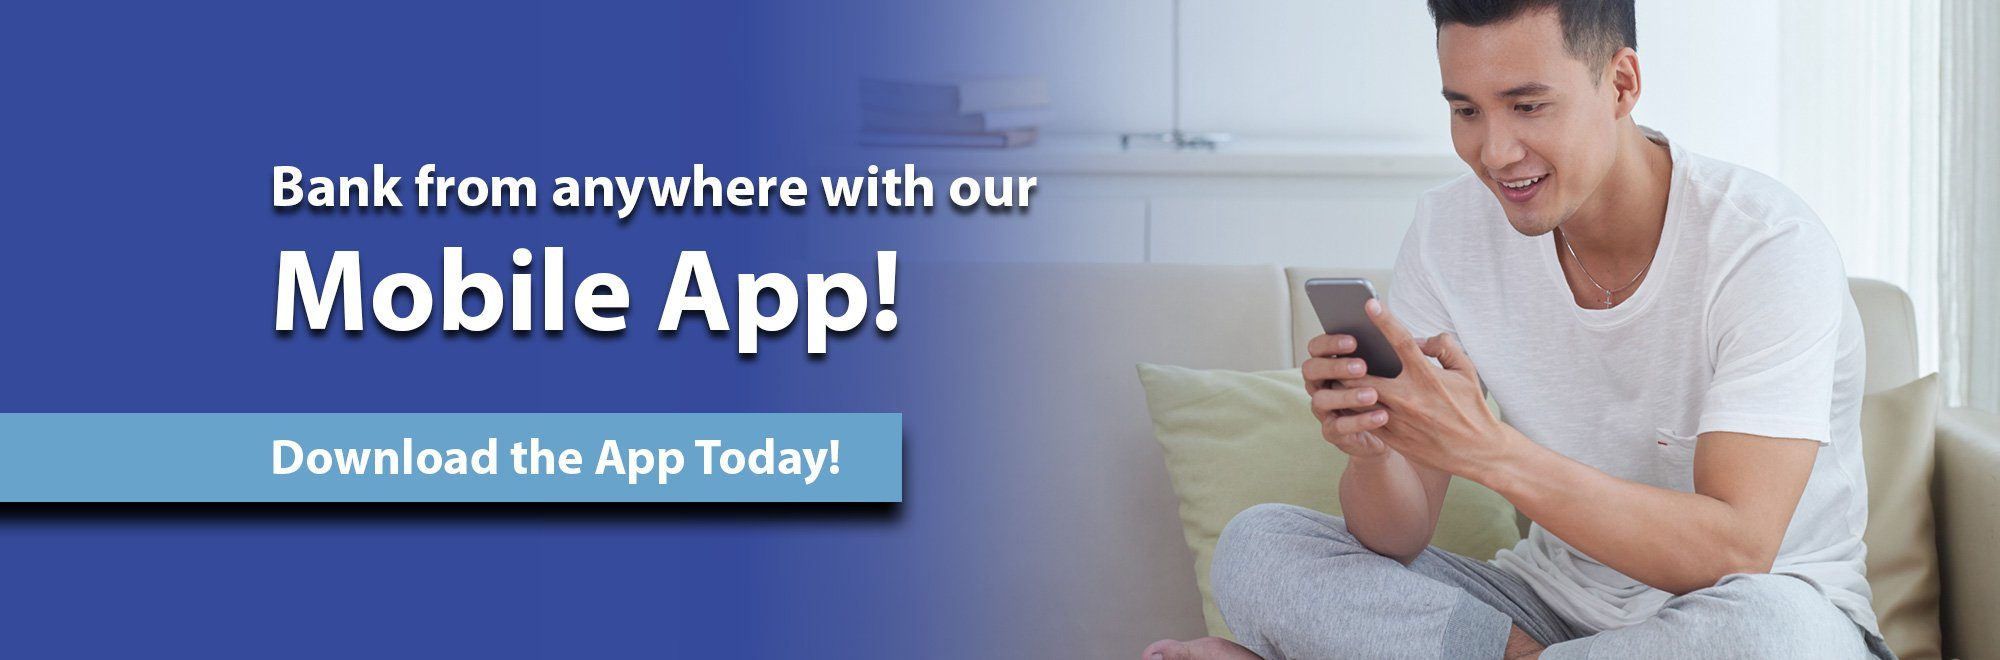 Bank from anywhere with our Mobile app. Download the app today.